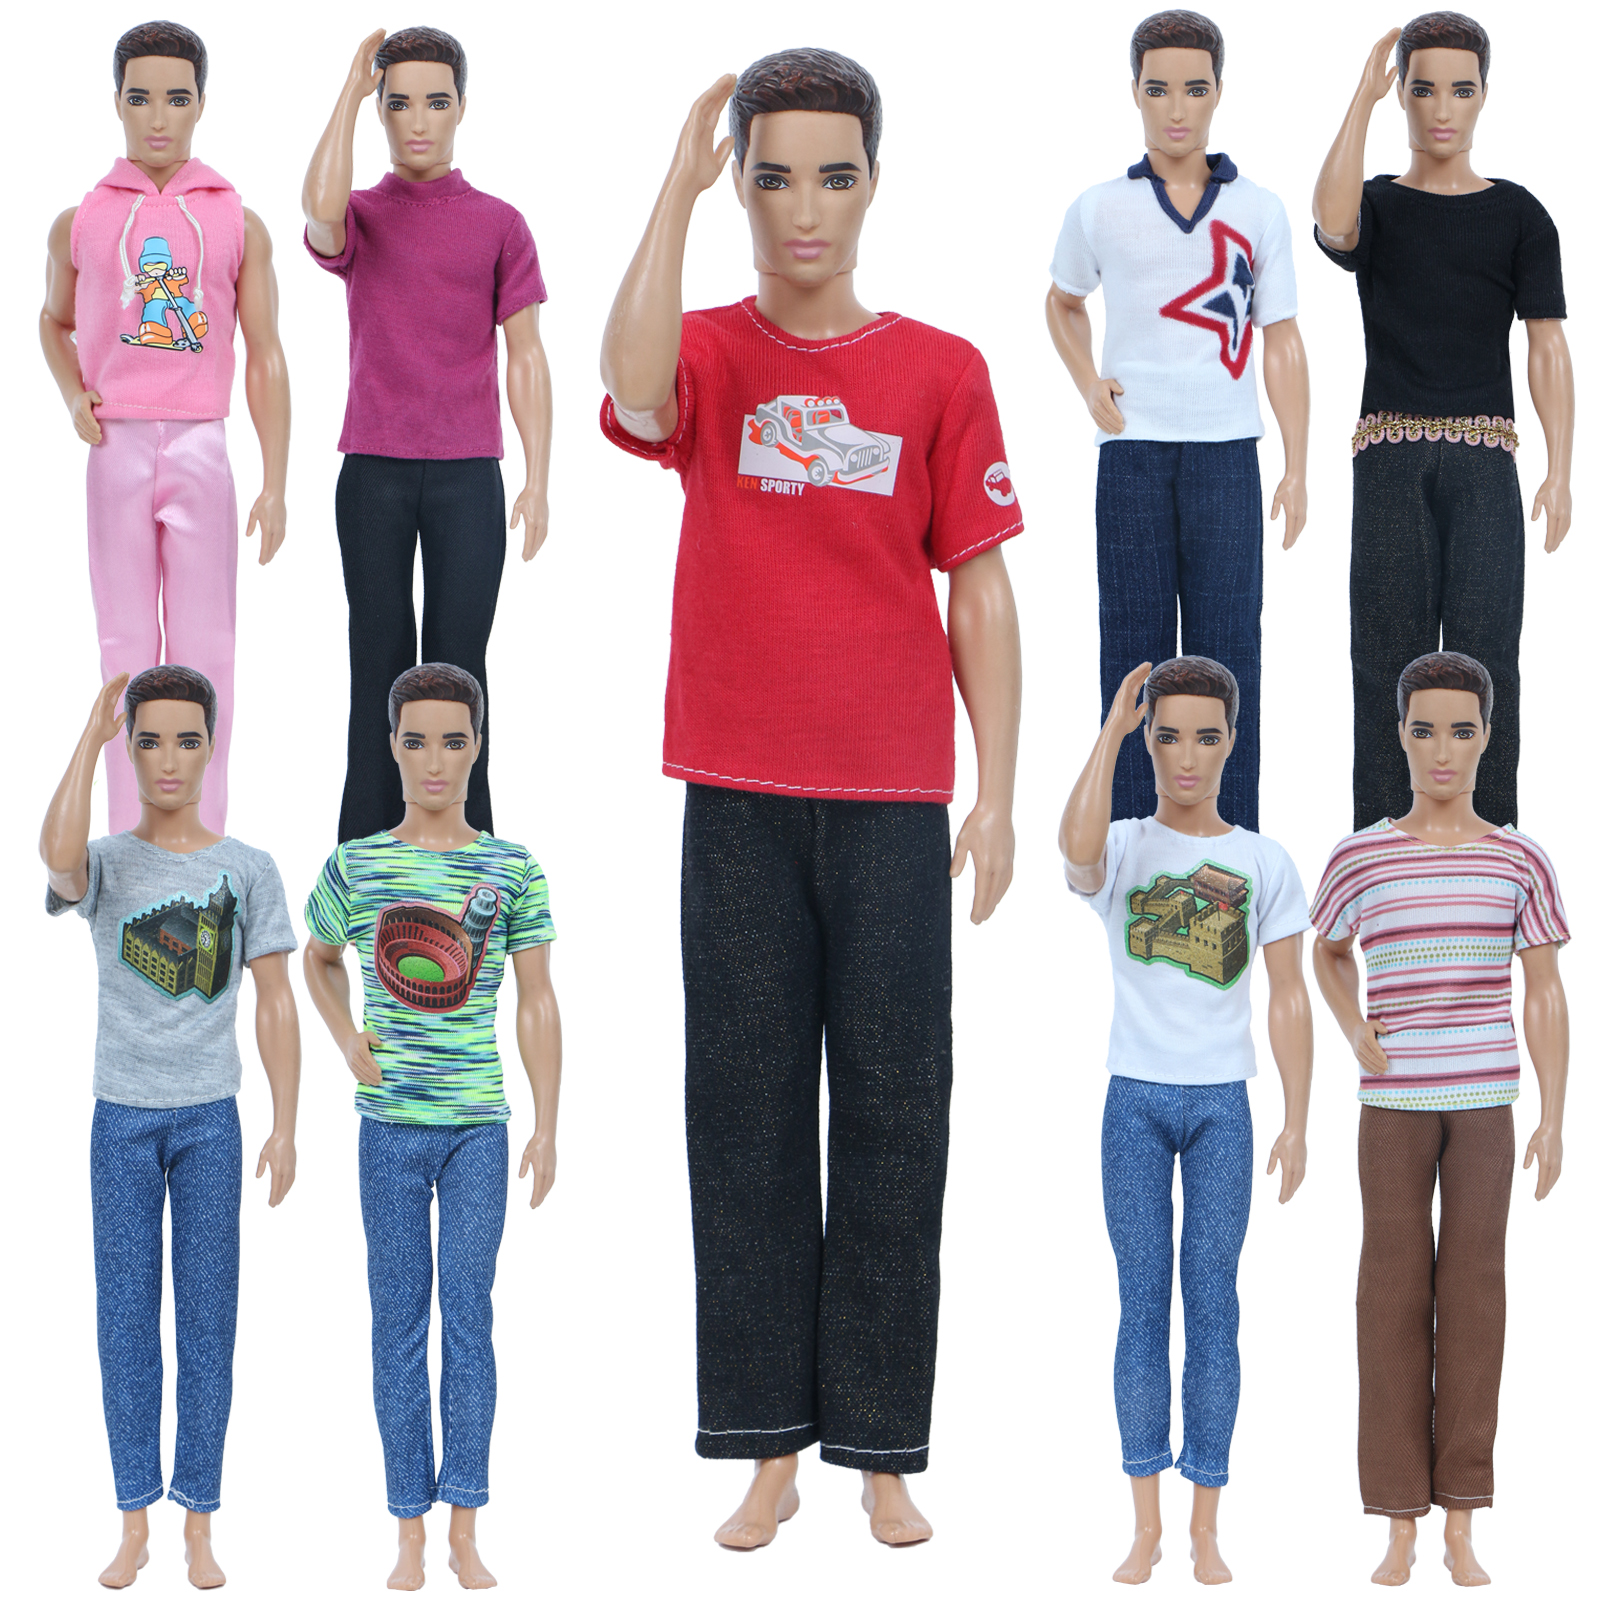 Random 1 Set High Quality Mens Doll Outfit for Barbie Doll Friend Ken Daily Casual Wear Shirt Pants Trousers Clothes Accessories|Dolls Accessories|   - AliExpress